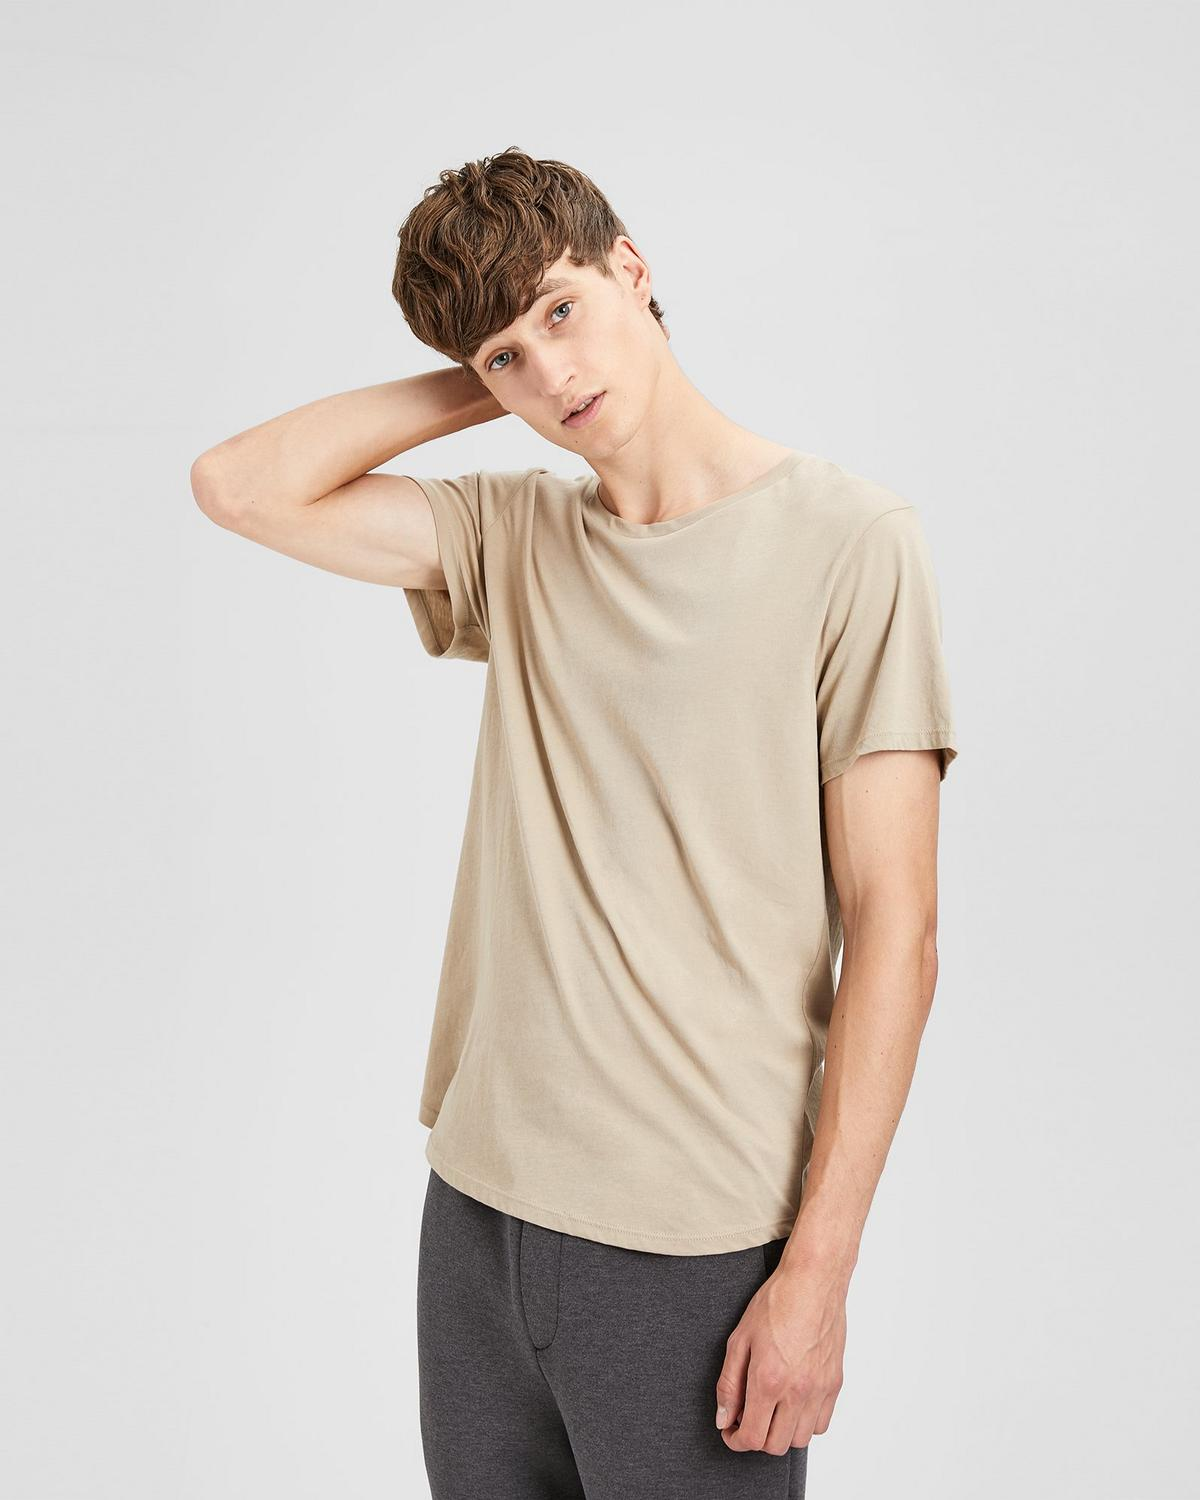 Cotton Curve Tee